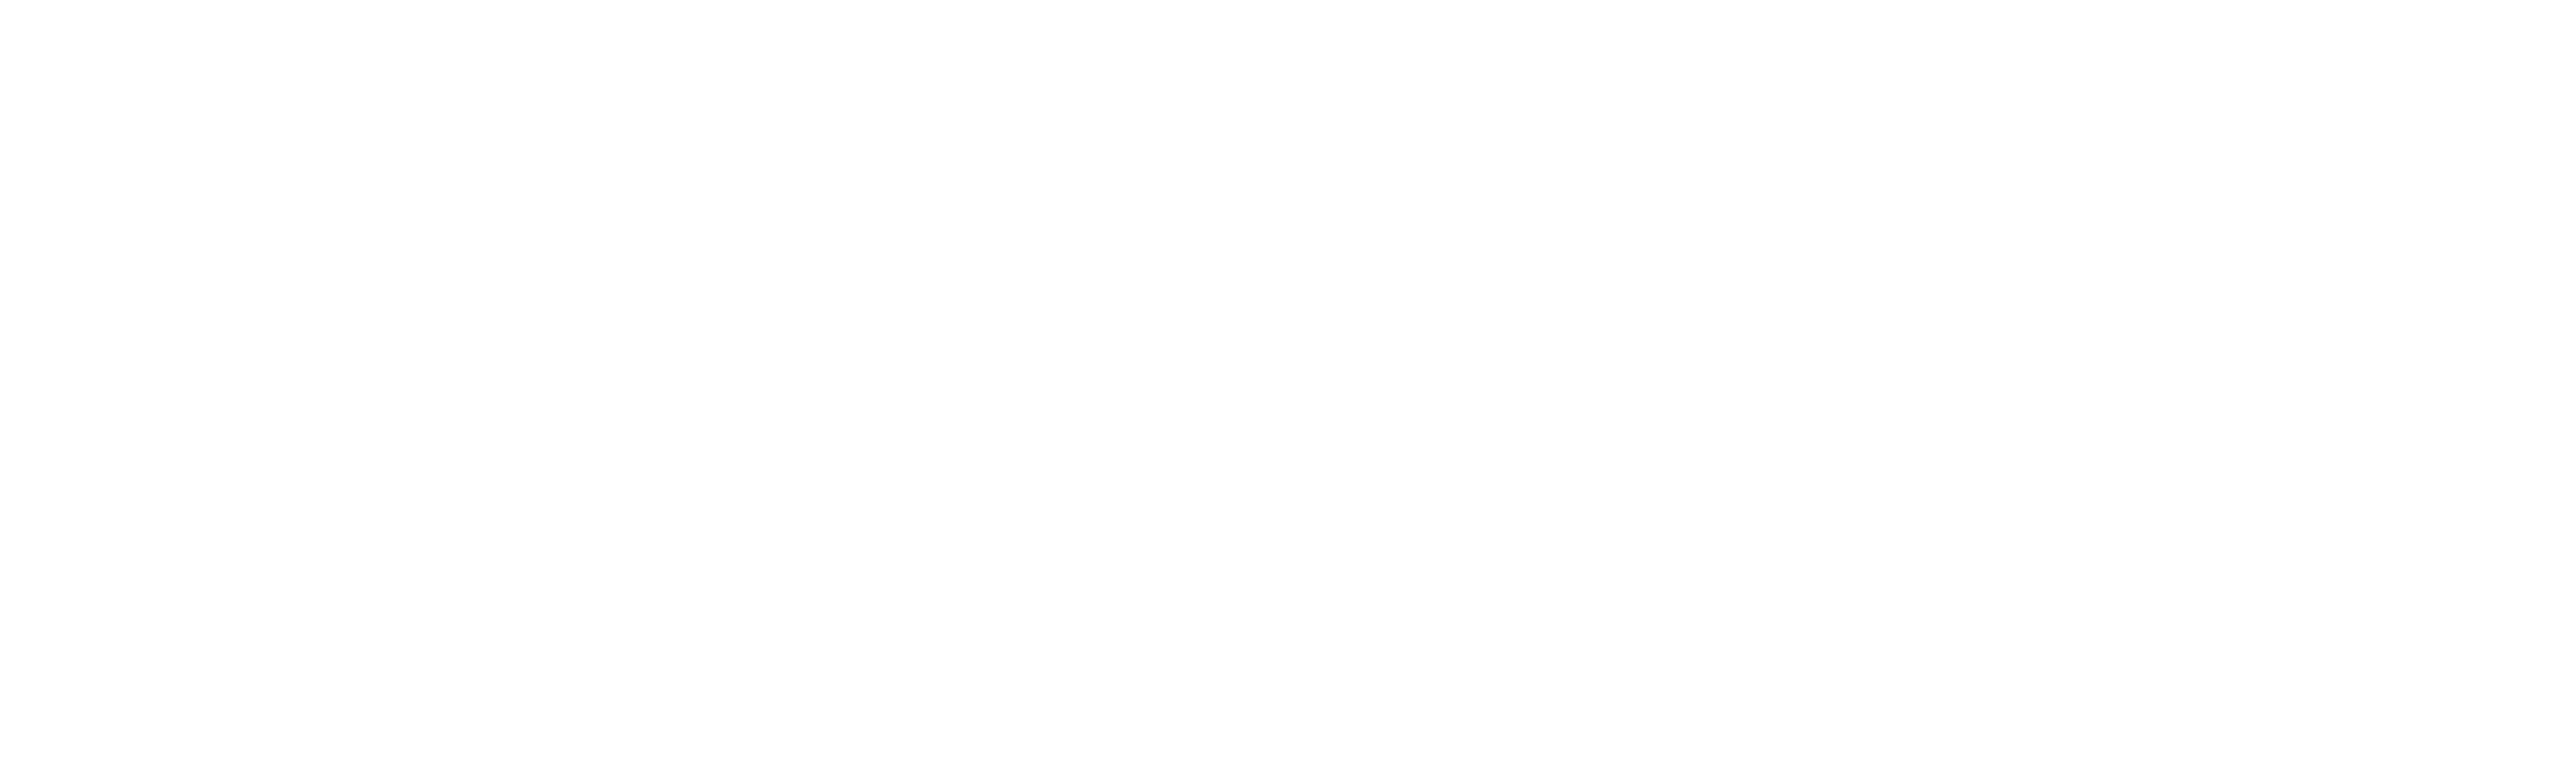 Spotify Vector PNG - 101844